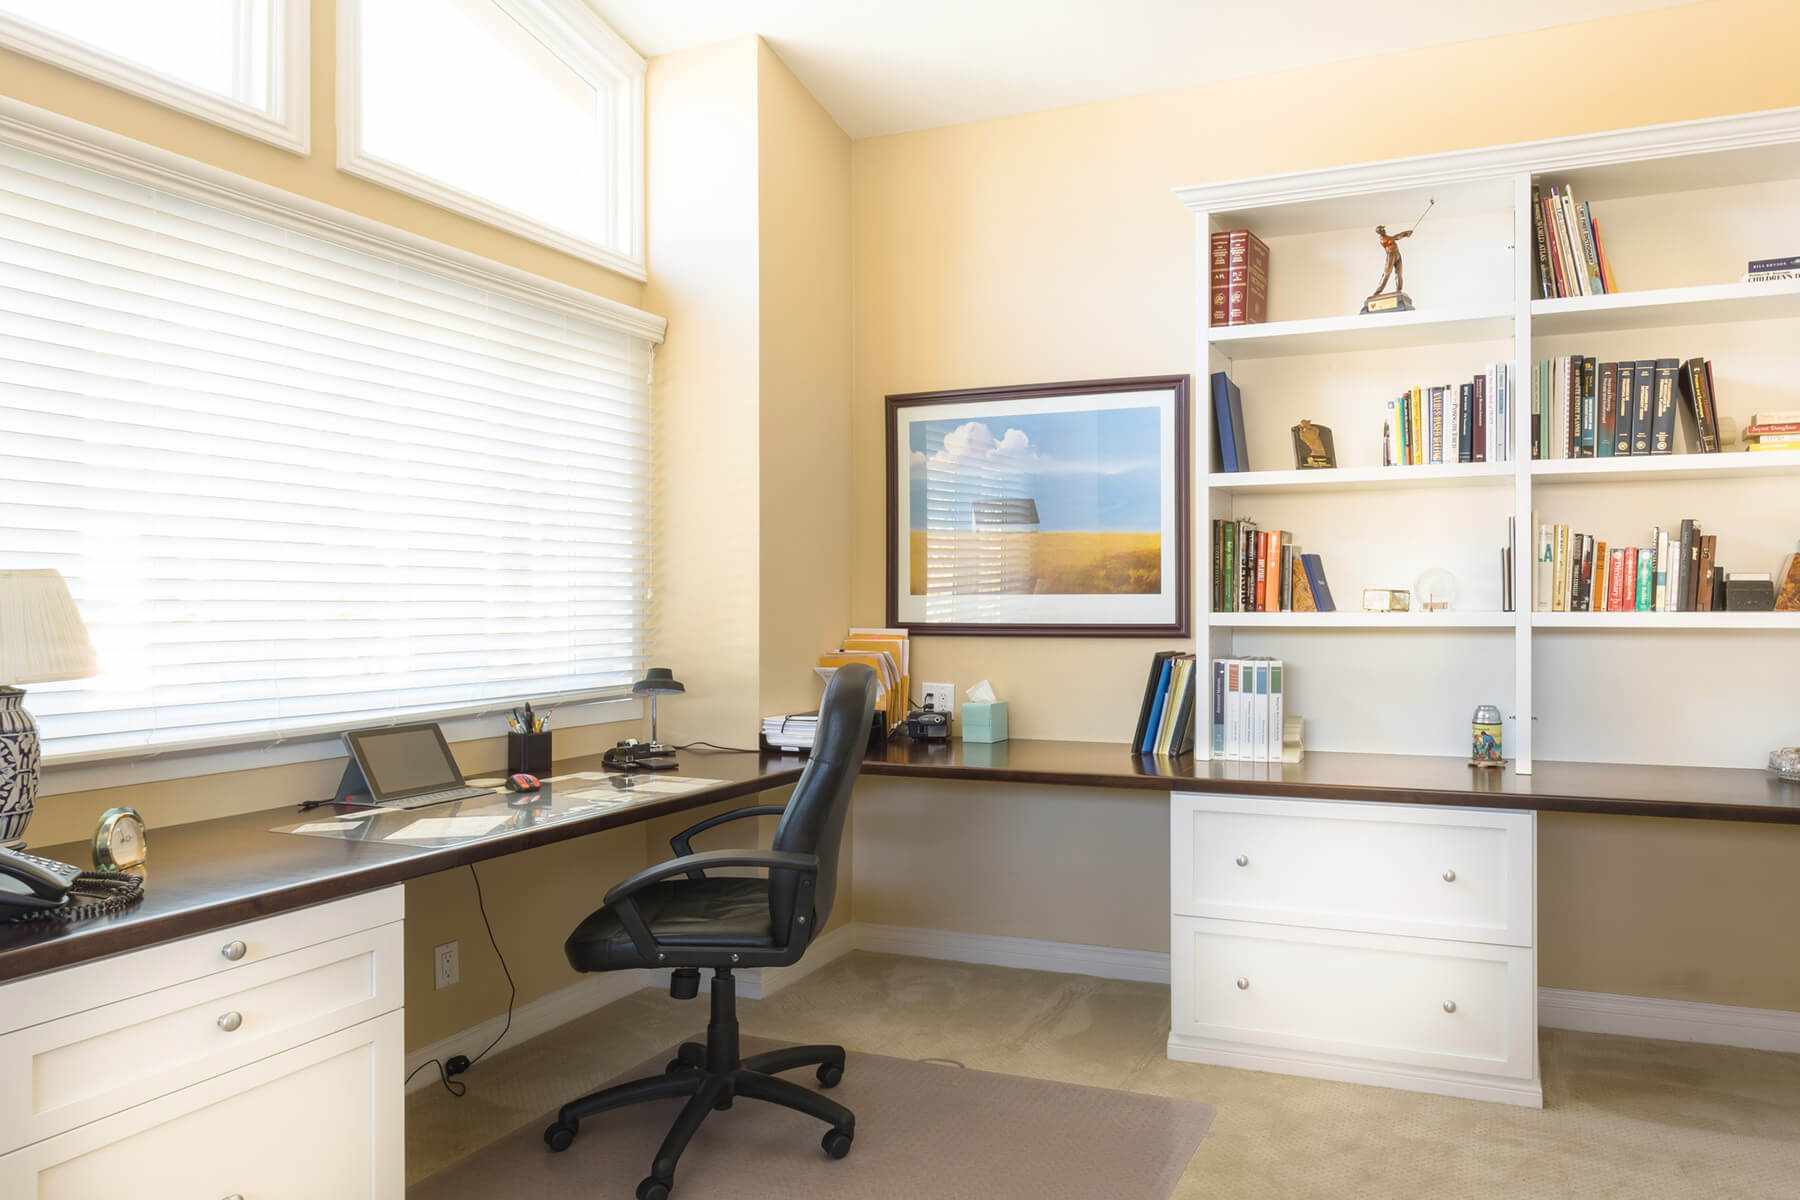 Spacious Home Office with Large L-Shaped Built-In Desk